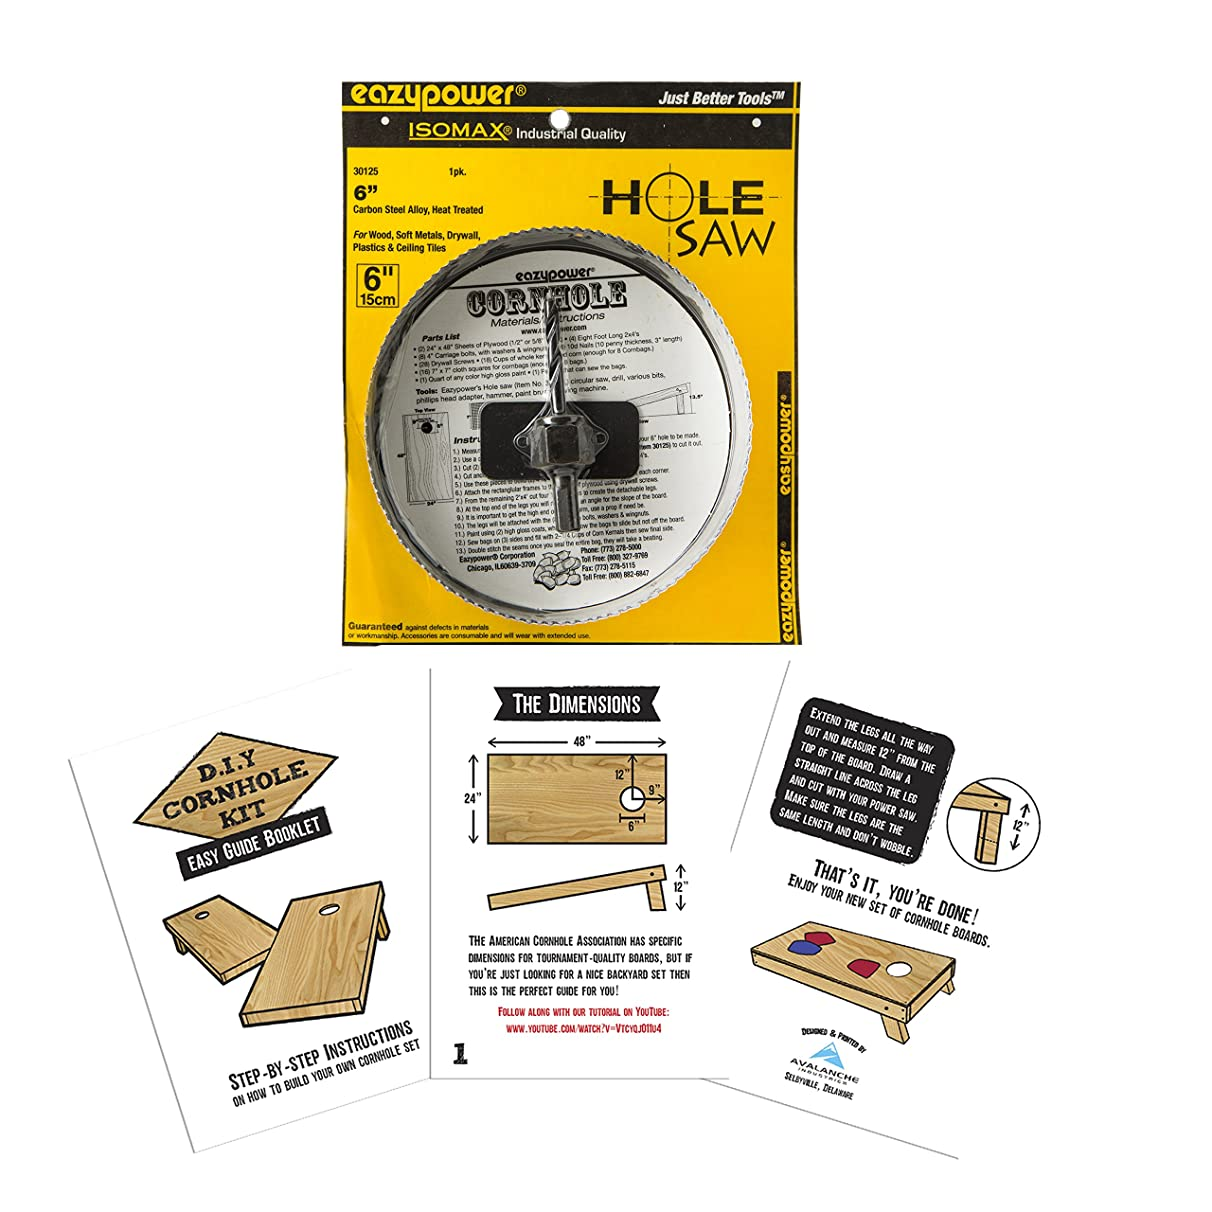 DIY Cornhole Kit - Includes Easy Guide Booklet and Hole Saw